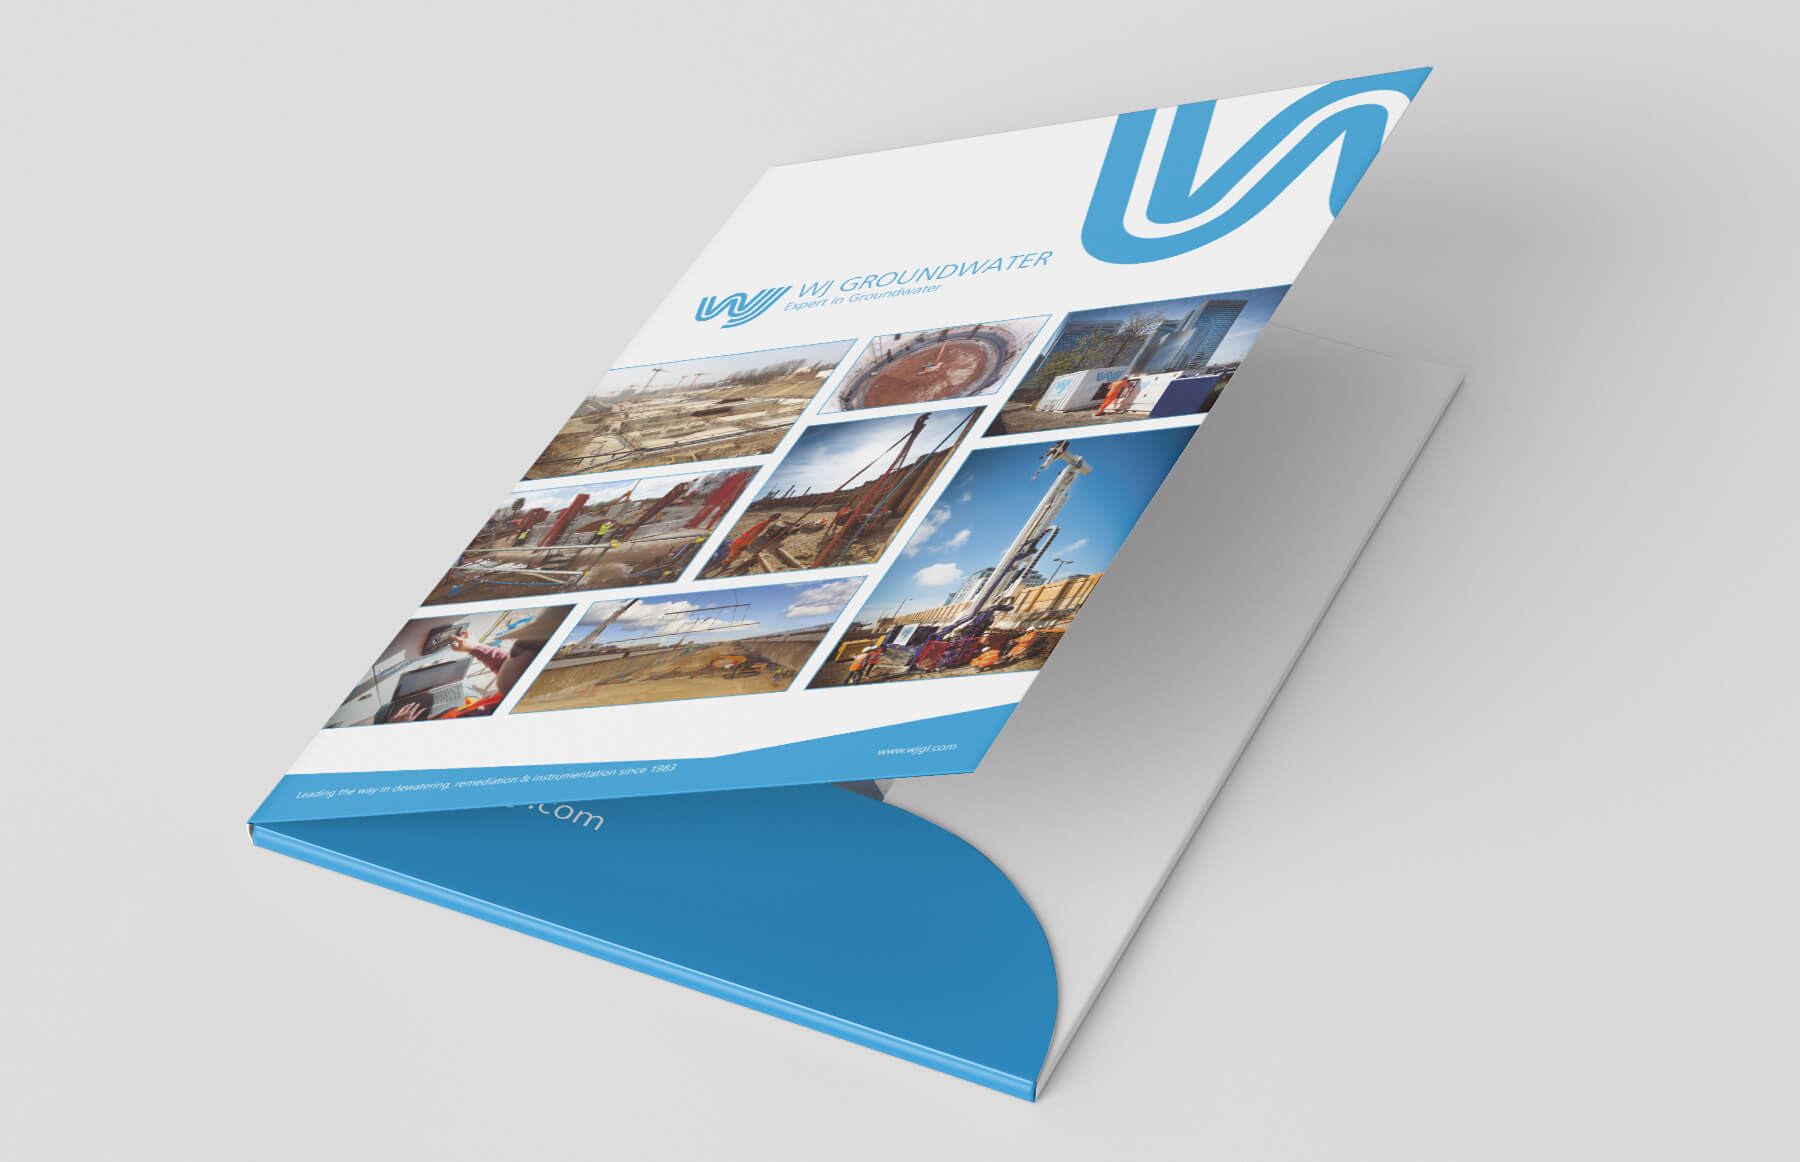 A4 Presentation folder to hold the UK brochure